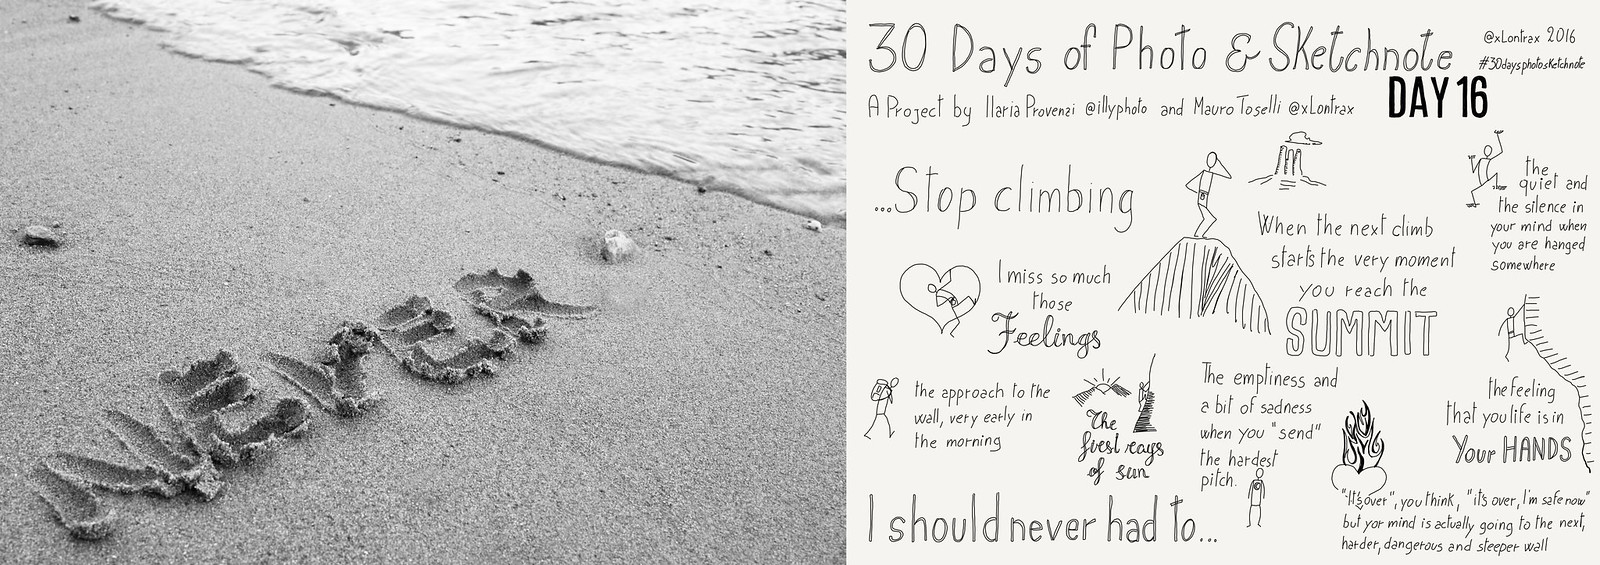 Day 16. Non avrei mai dovuto... - I should never had to...